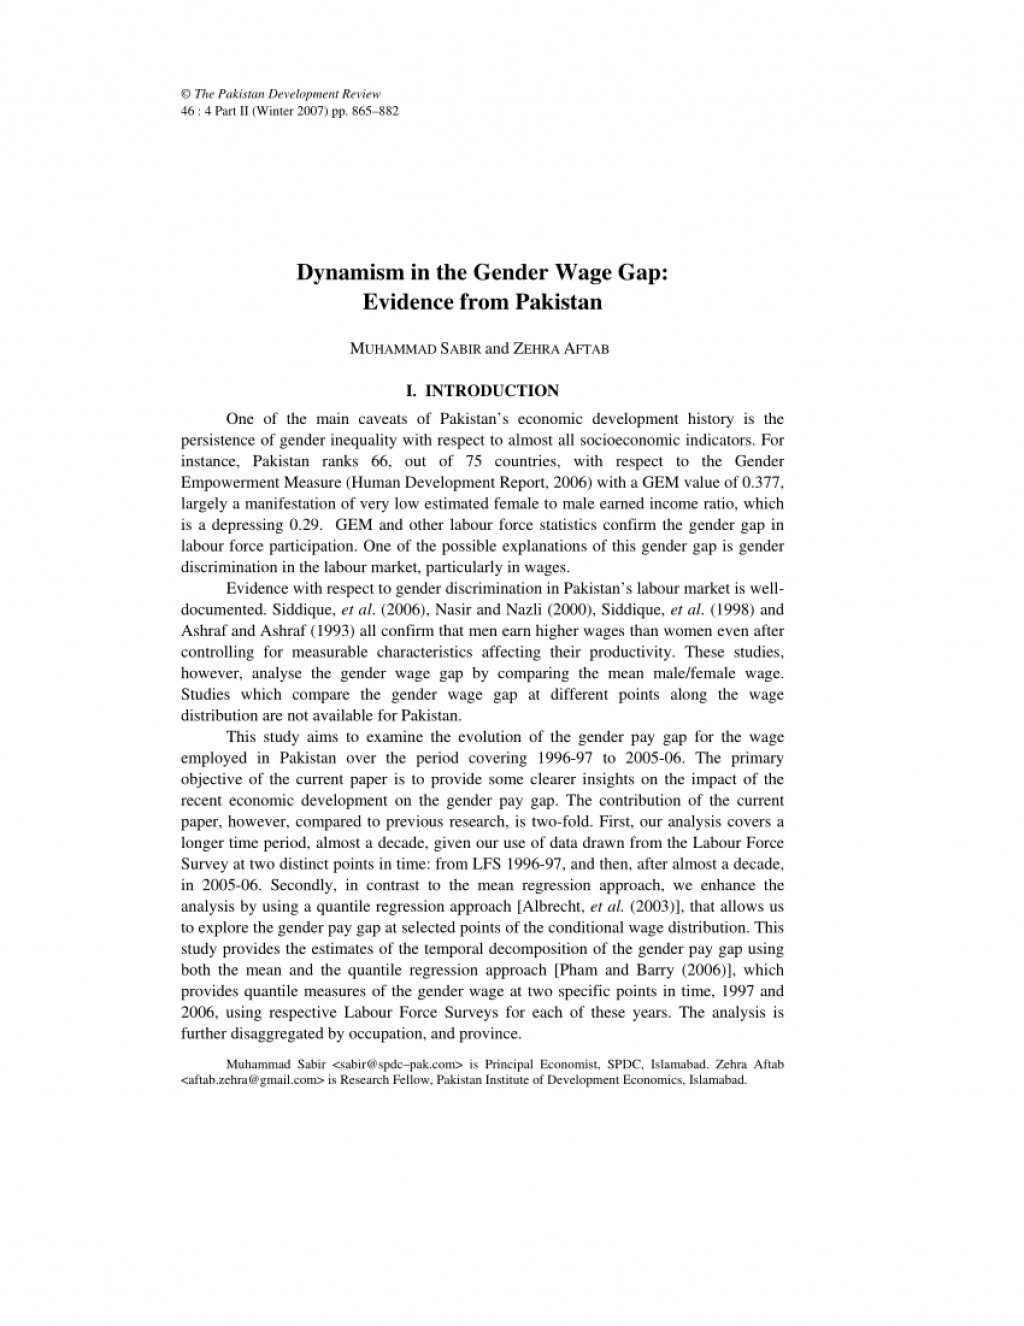 001 Pay Gap Research Paper Top Gender In India Wage Outline Large